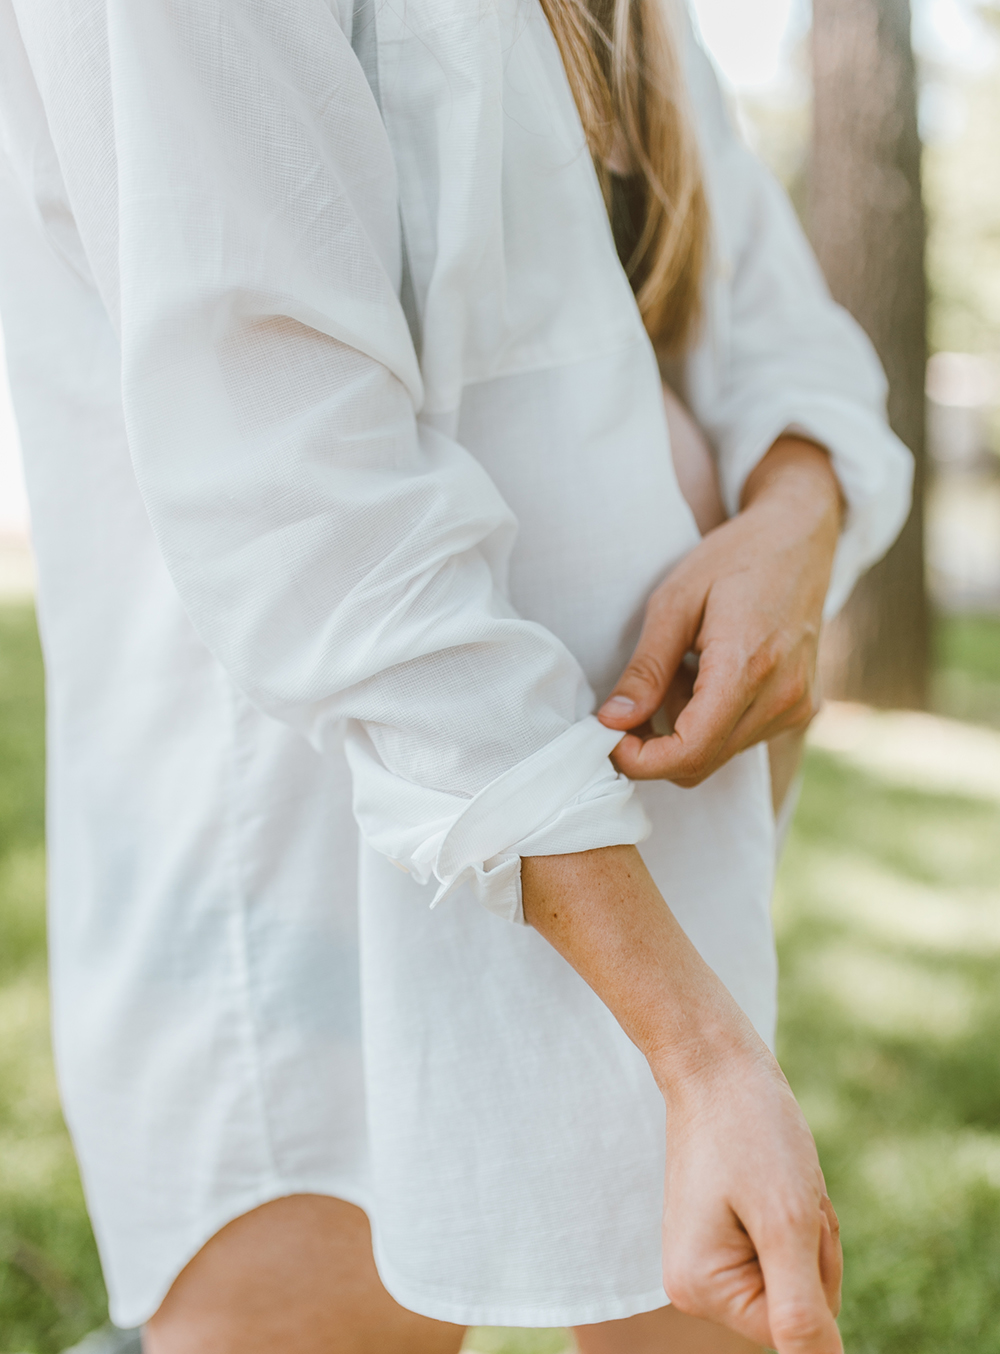 livvyland-blog-olivia-watson-lake-austin-texas-lifestyle-mom-blogger-maternity-patagonia-AC-button-down-shirt-1